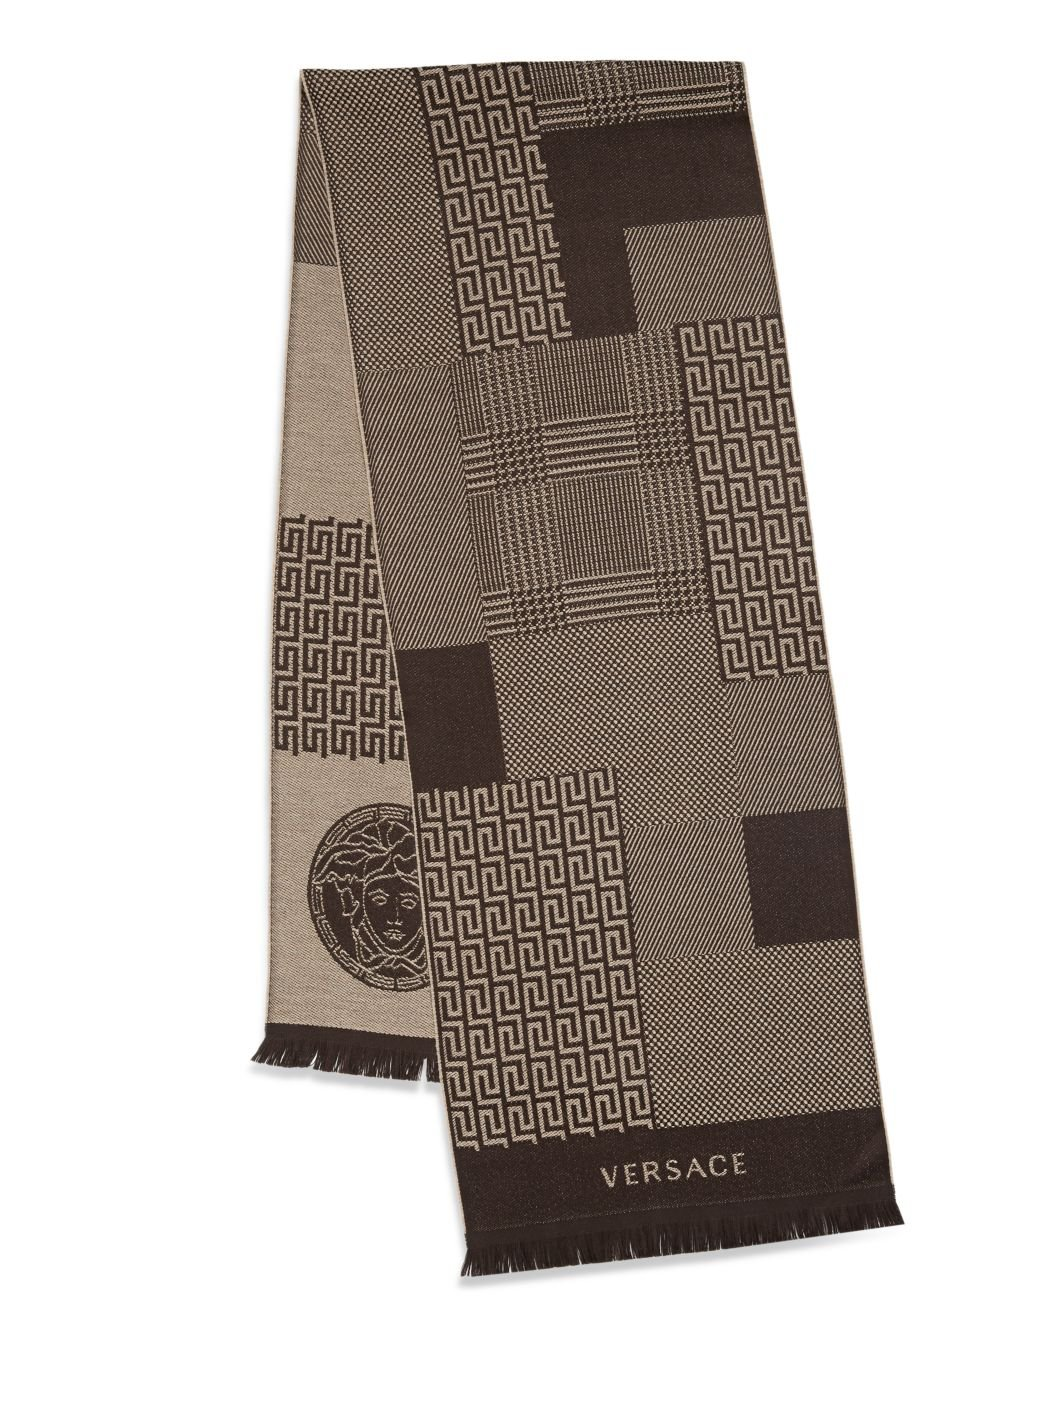 Versace Men's Paneled Multi-Pattern Wool Scarf (Marrone)